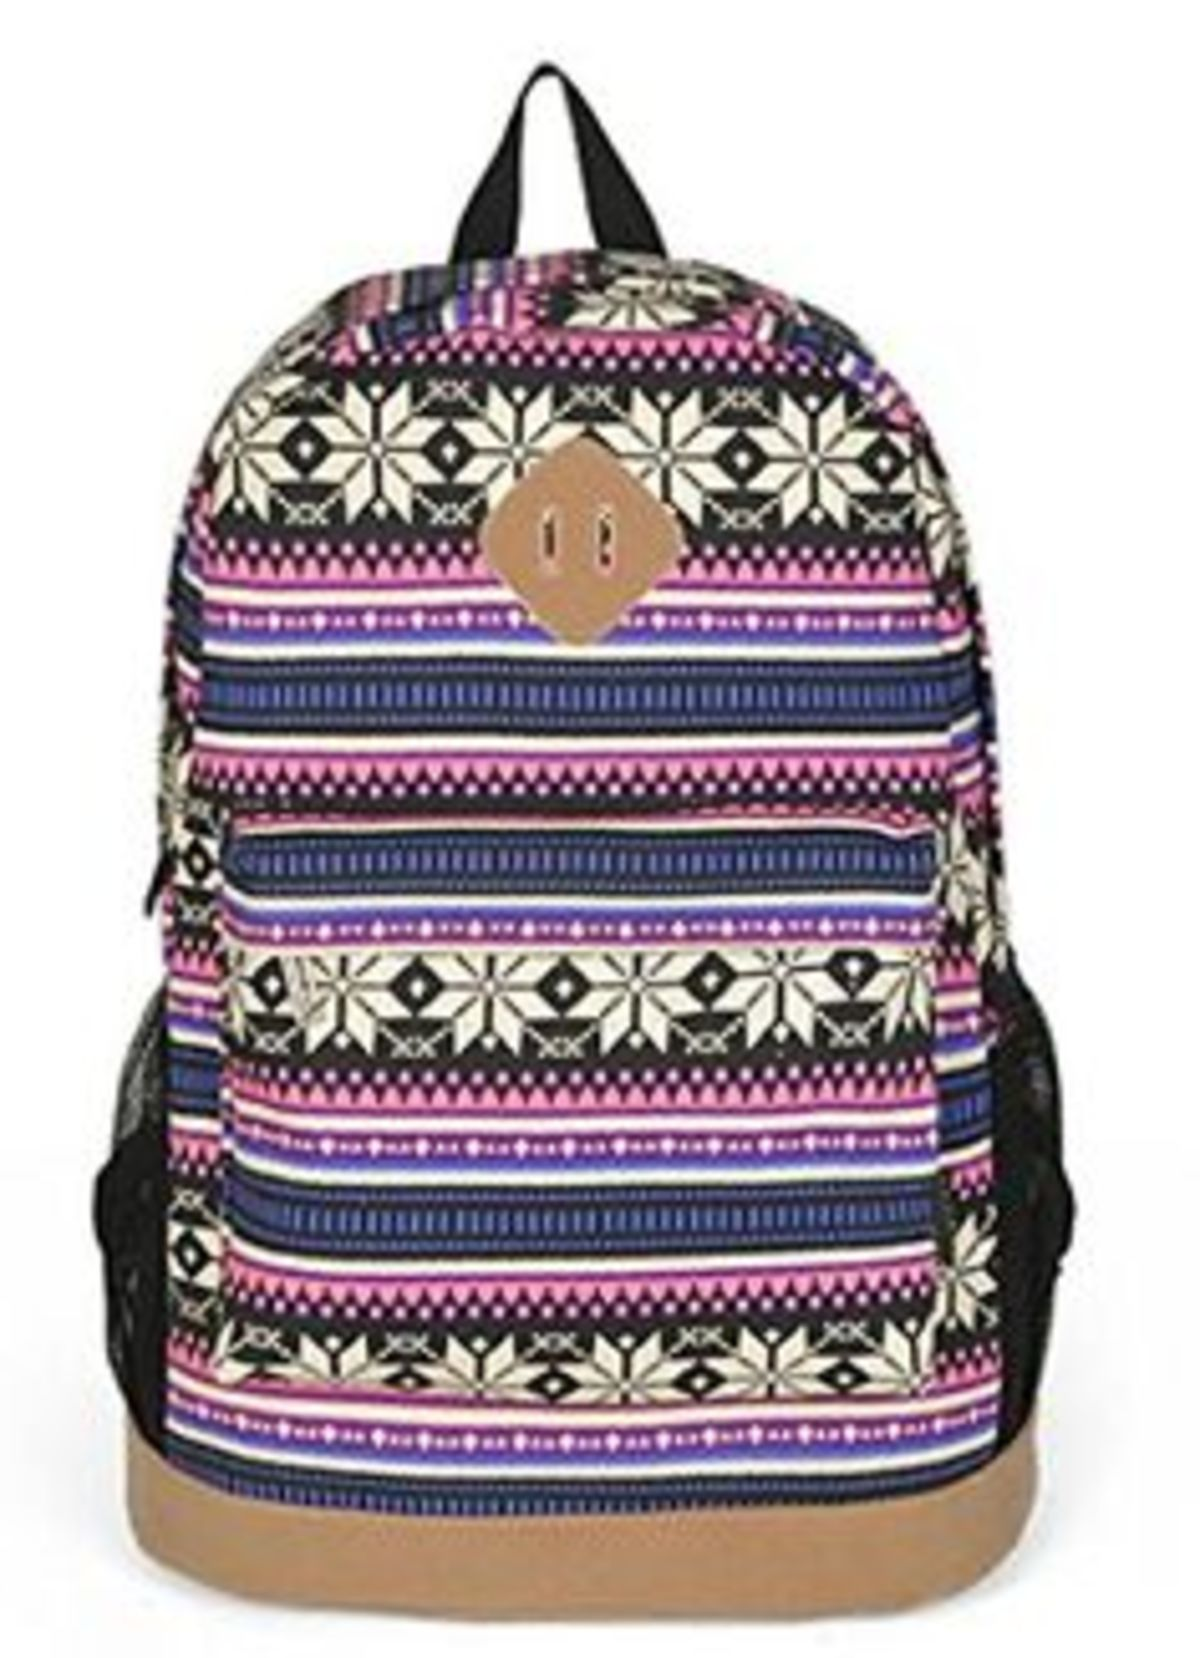 Best Backpacks For Girls - Crazy Backpacks